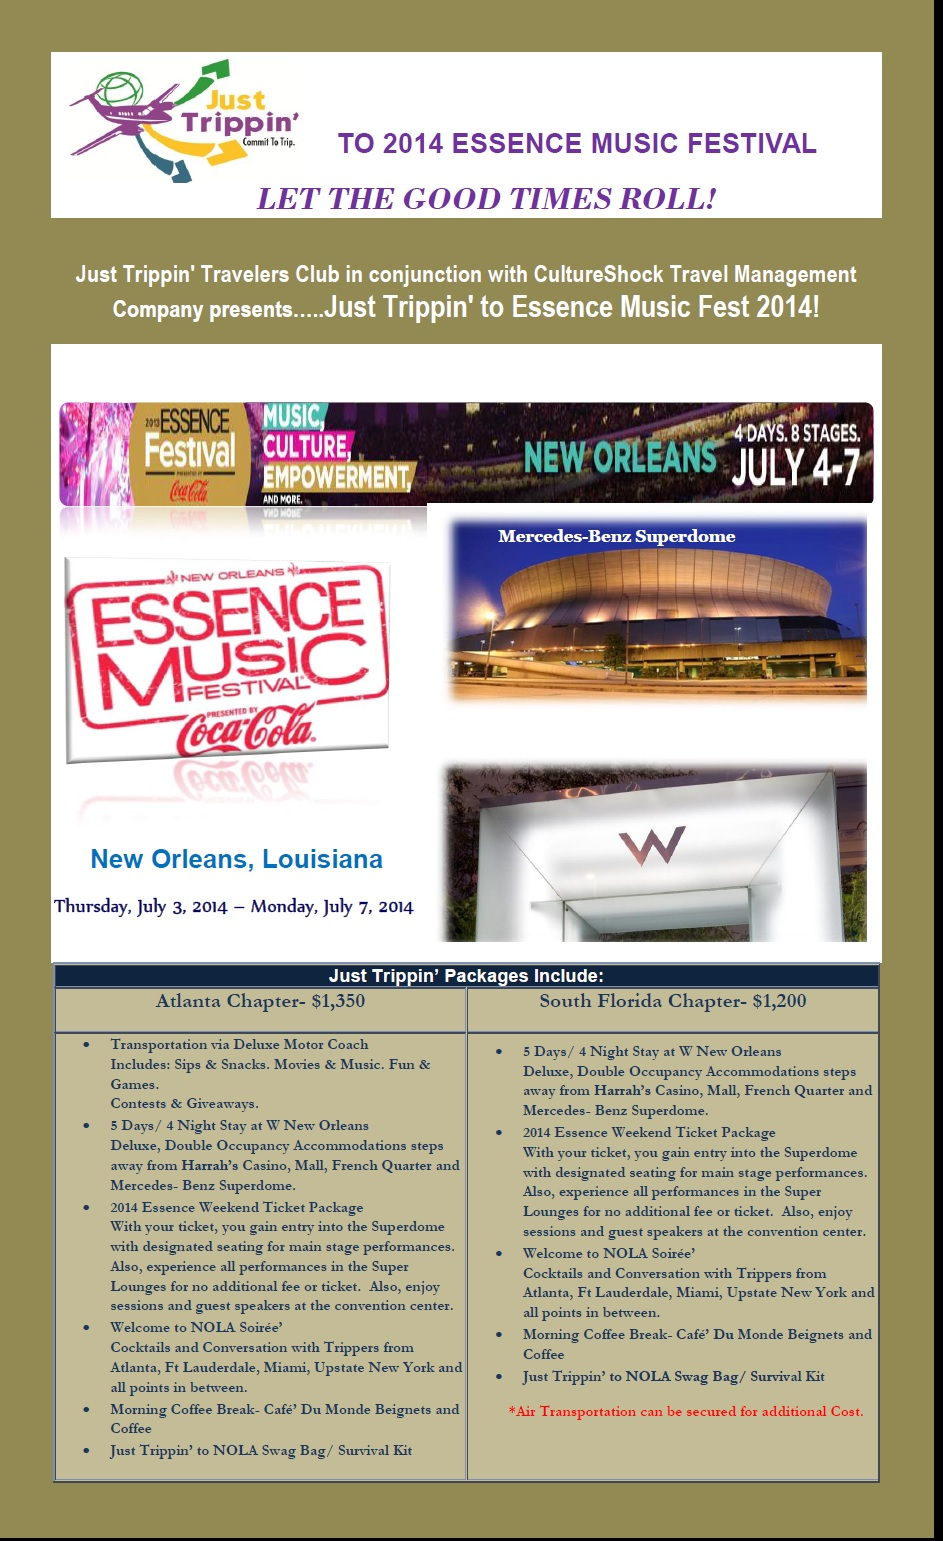 Essence Festival 2014 Announcement and Details